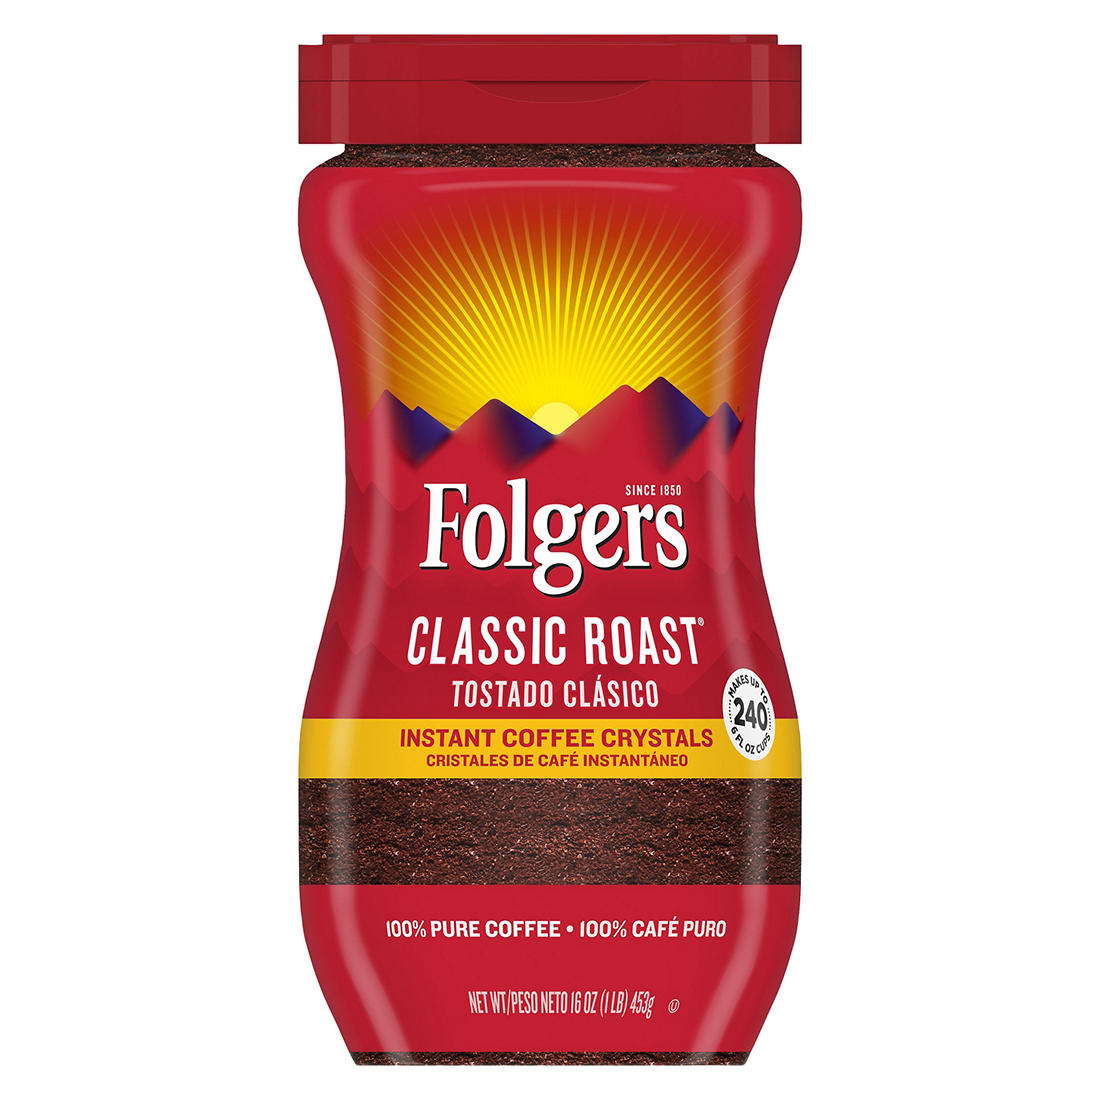 photo about Folgers Coffee Coupons Printable referred to as Folgers Immediate Espresso, 16 oz.